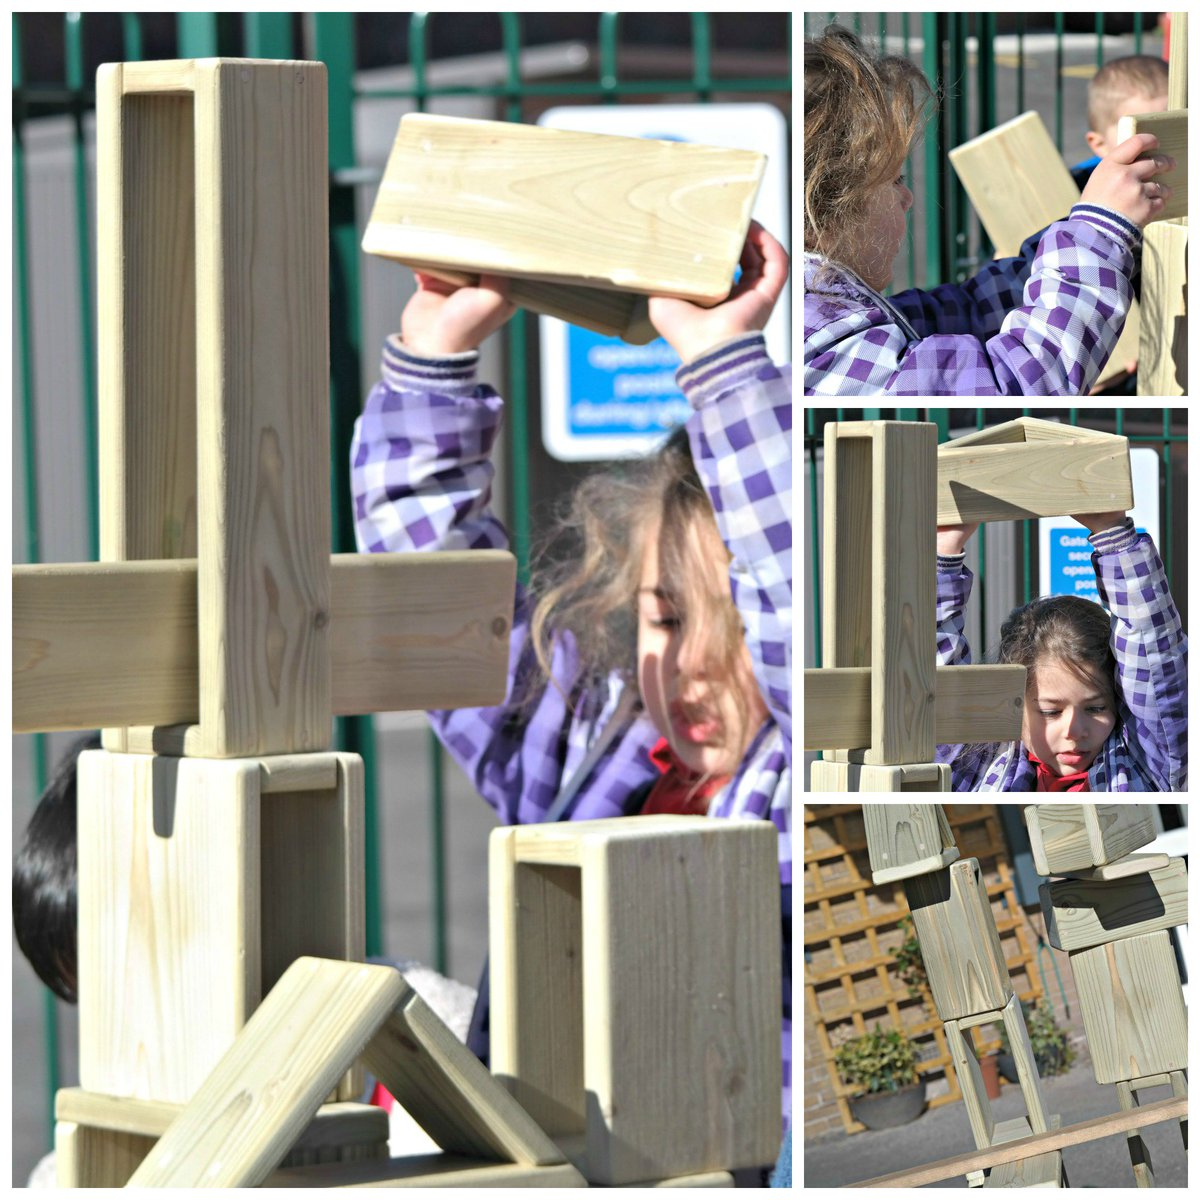 Win this large set of Giant Outdoor Hollow Blocks from TTS! All details at https://t.co/msvqerz92F. Good Luck! https://t.co/flHH5hNUaH